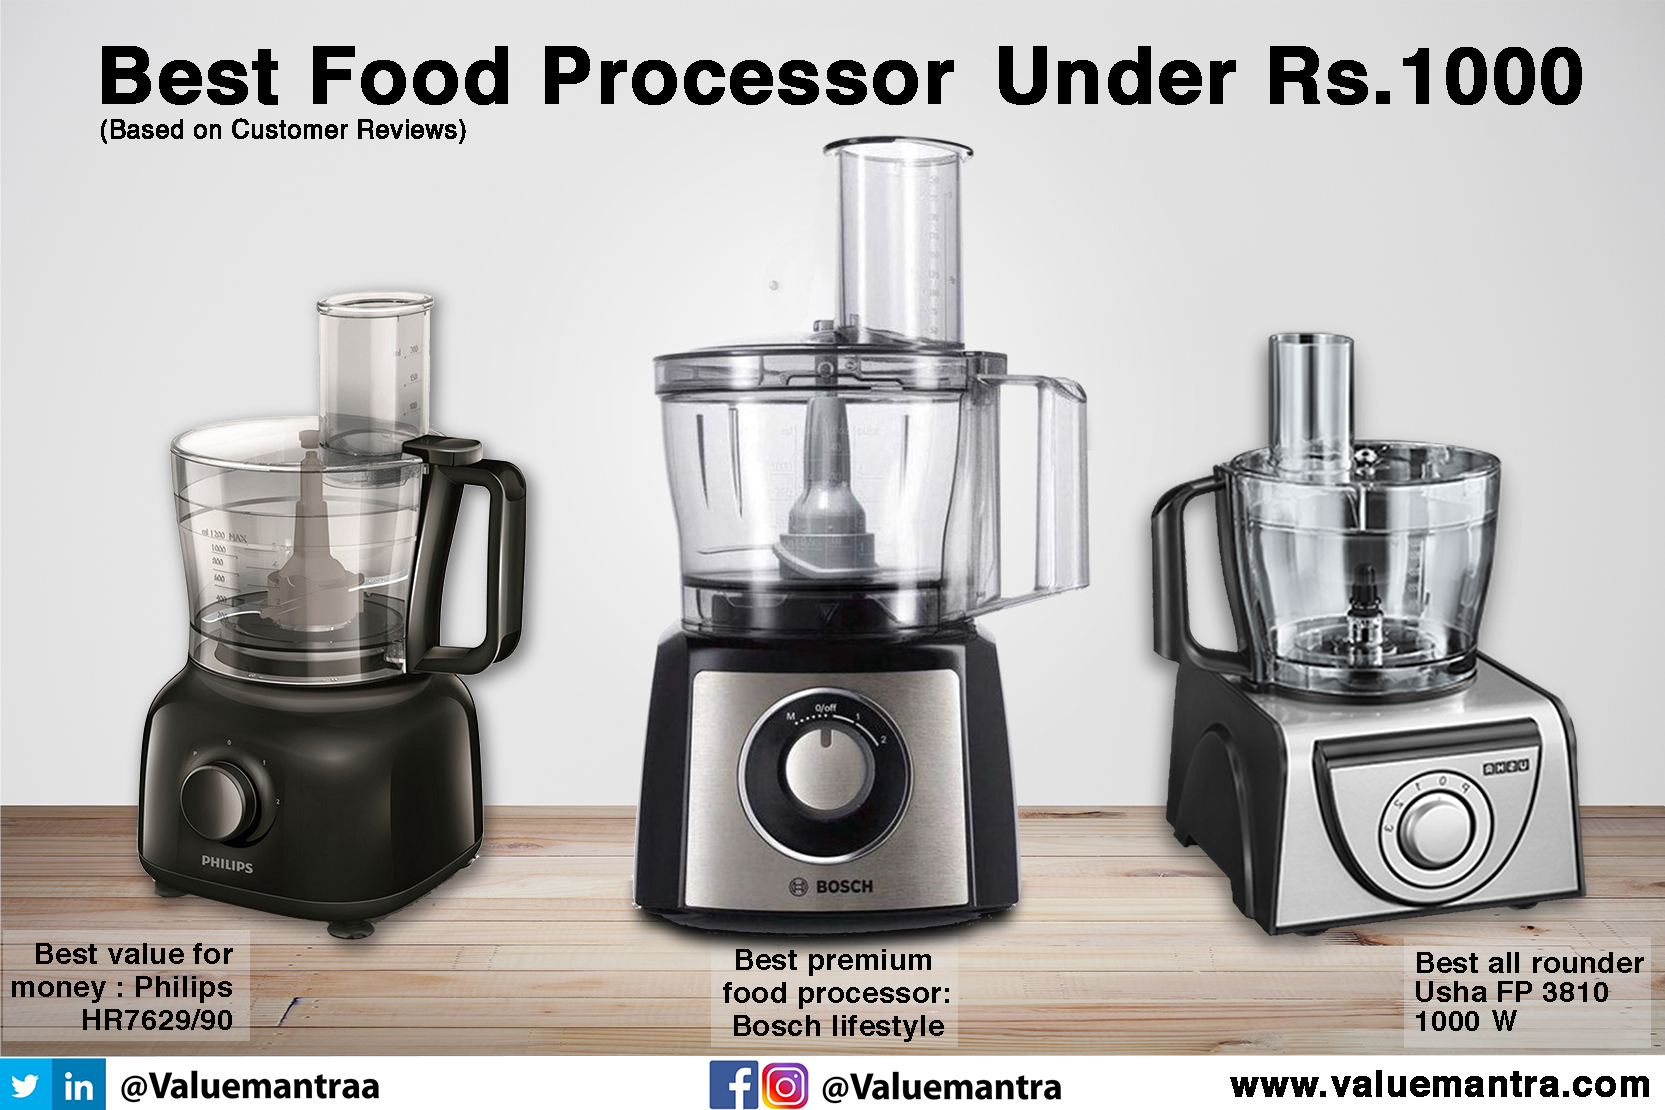 The Best Food Processors, Prices and More